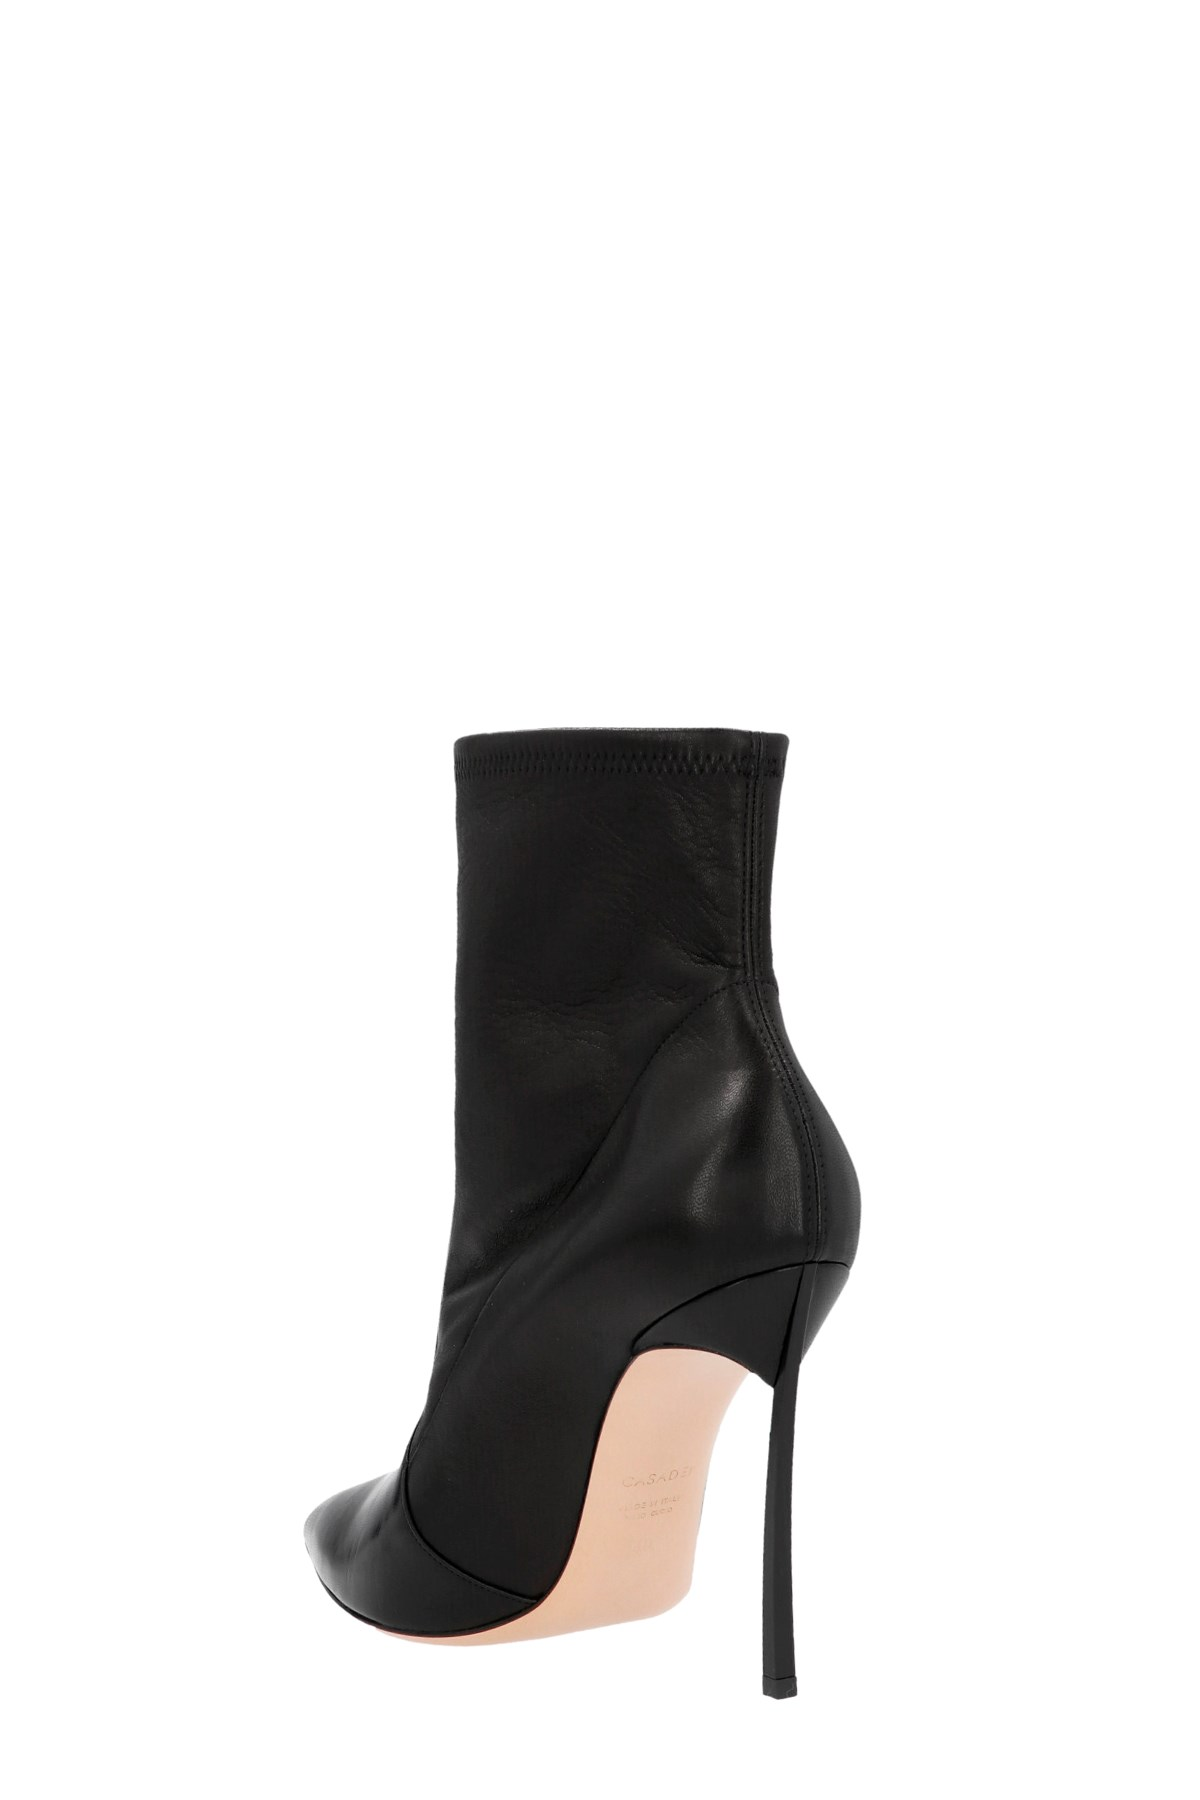 casadei Nappa ankle boots available on